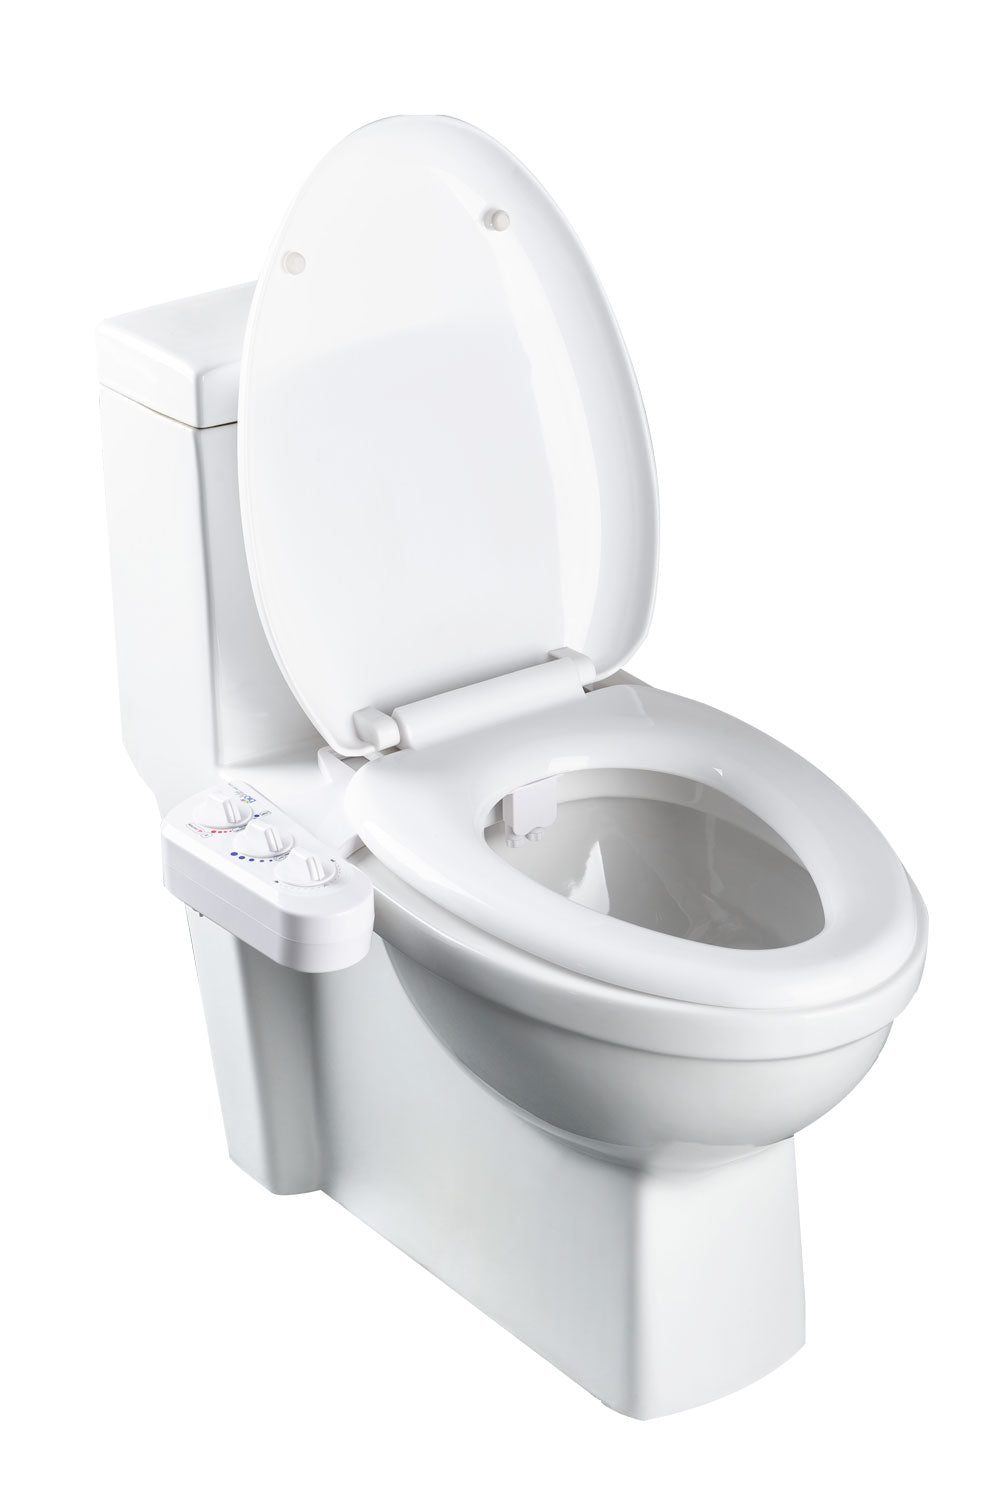 BB-270 on a toilet